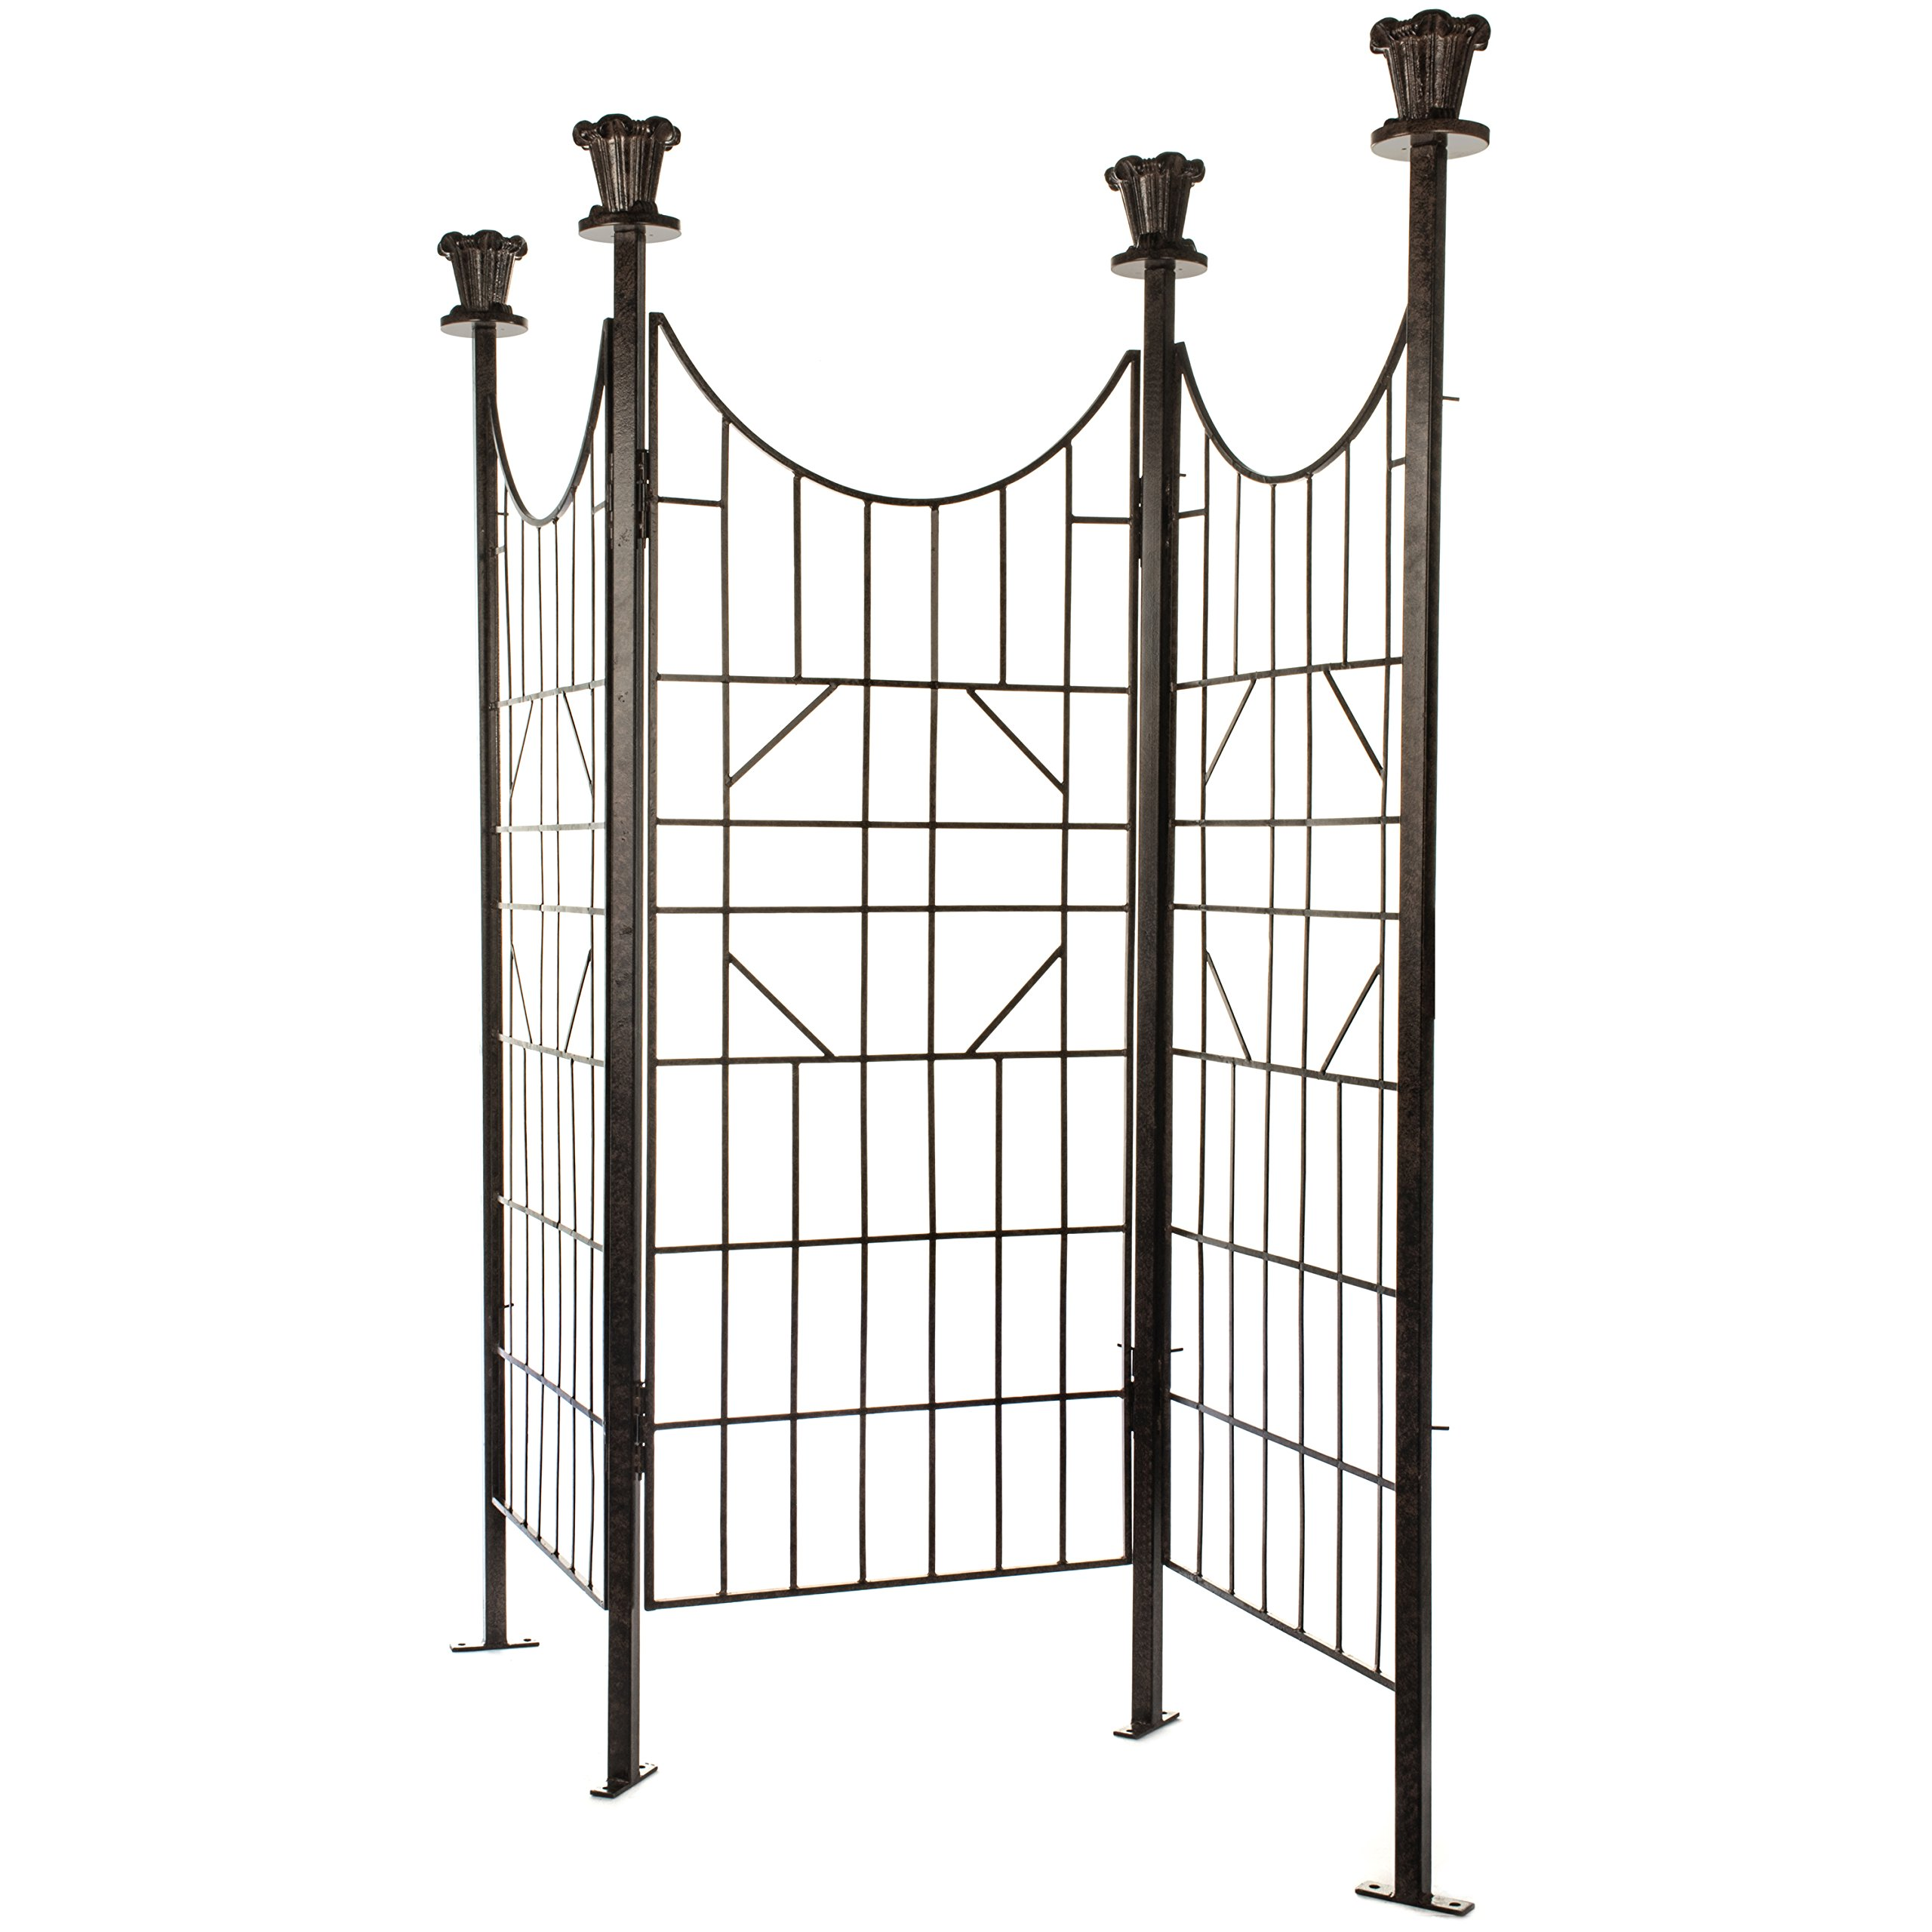 H Potter Large Iron Garden Trellis Screen / Patio Screen Fence